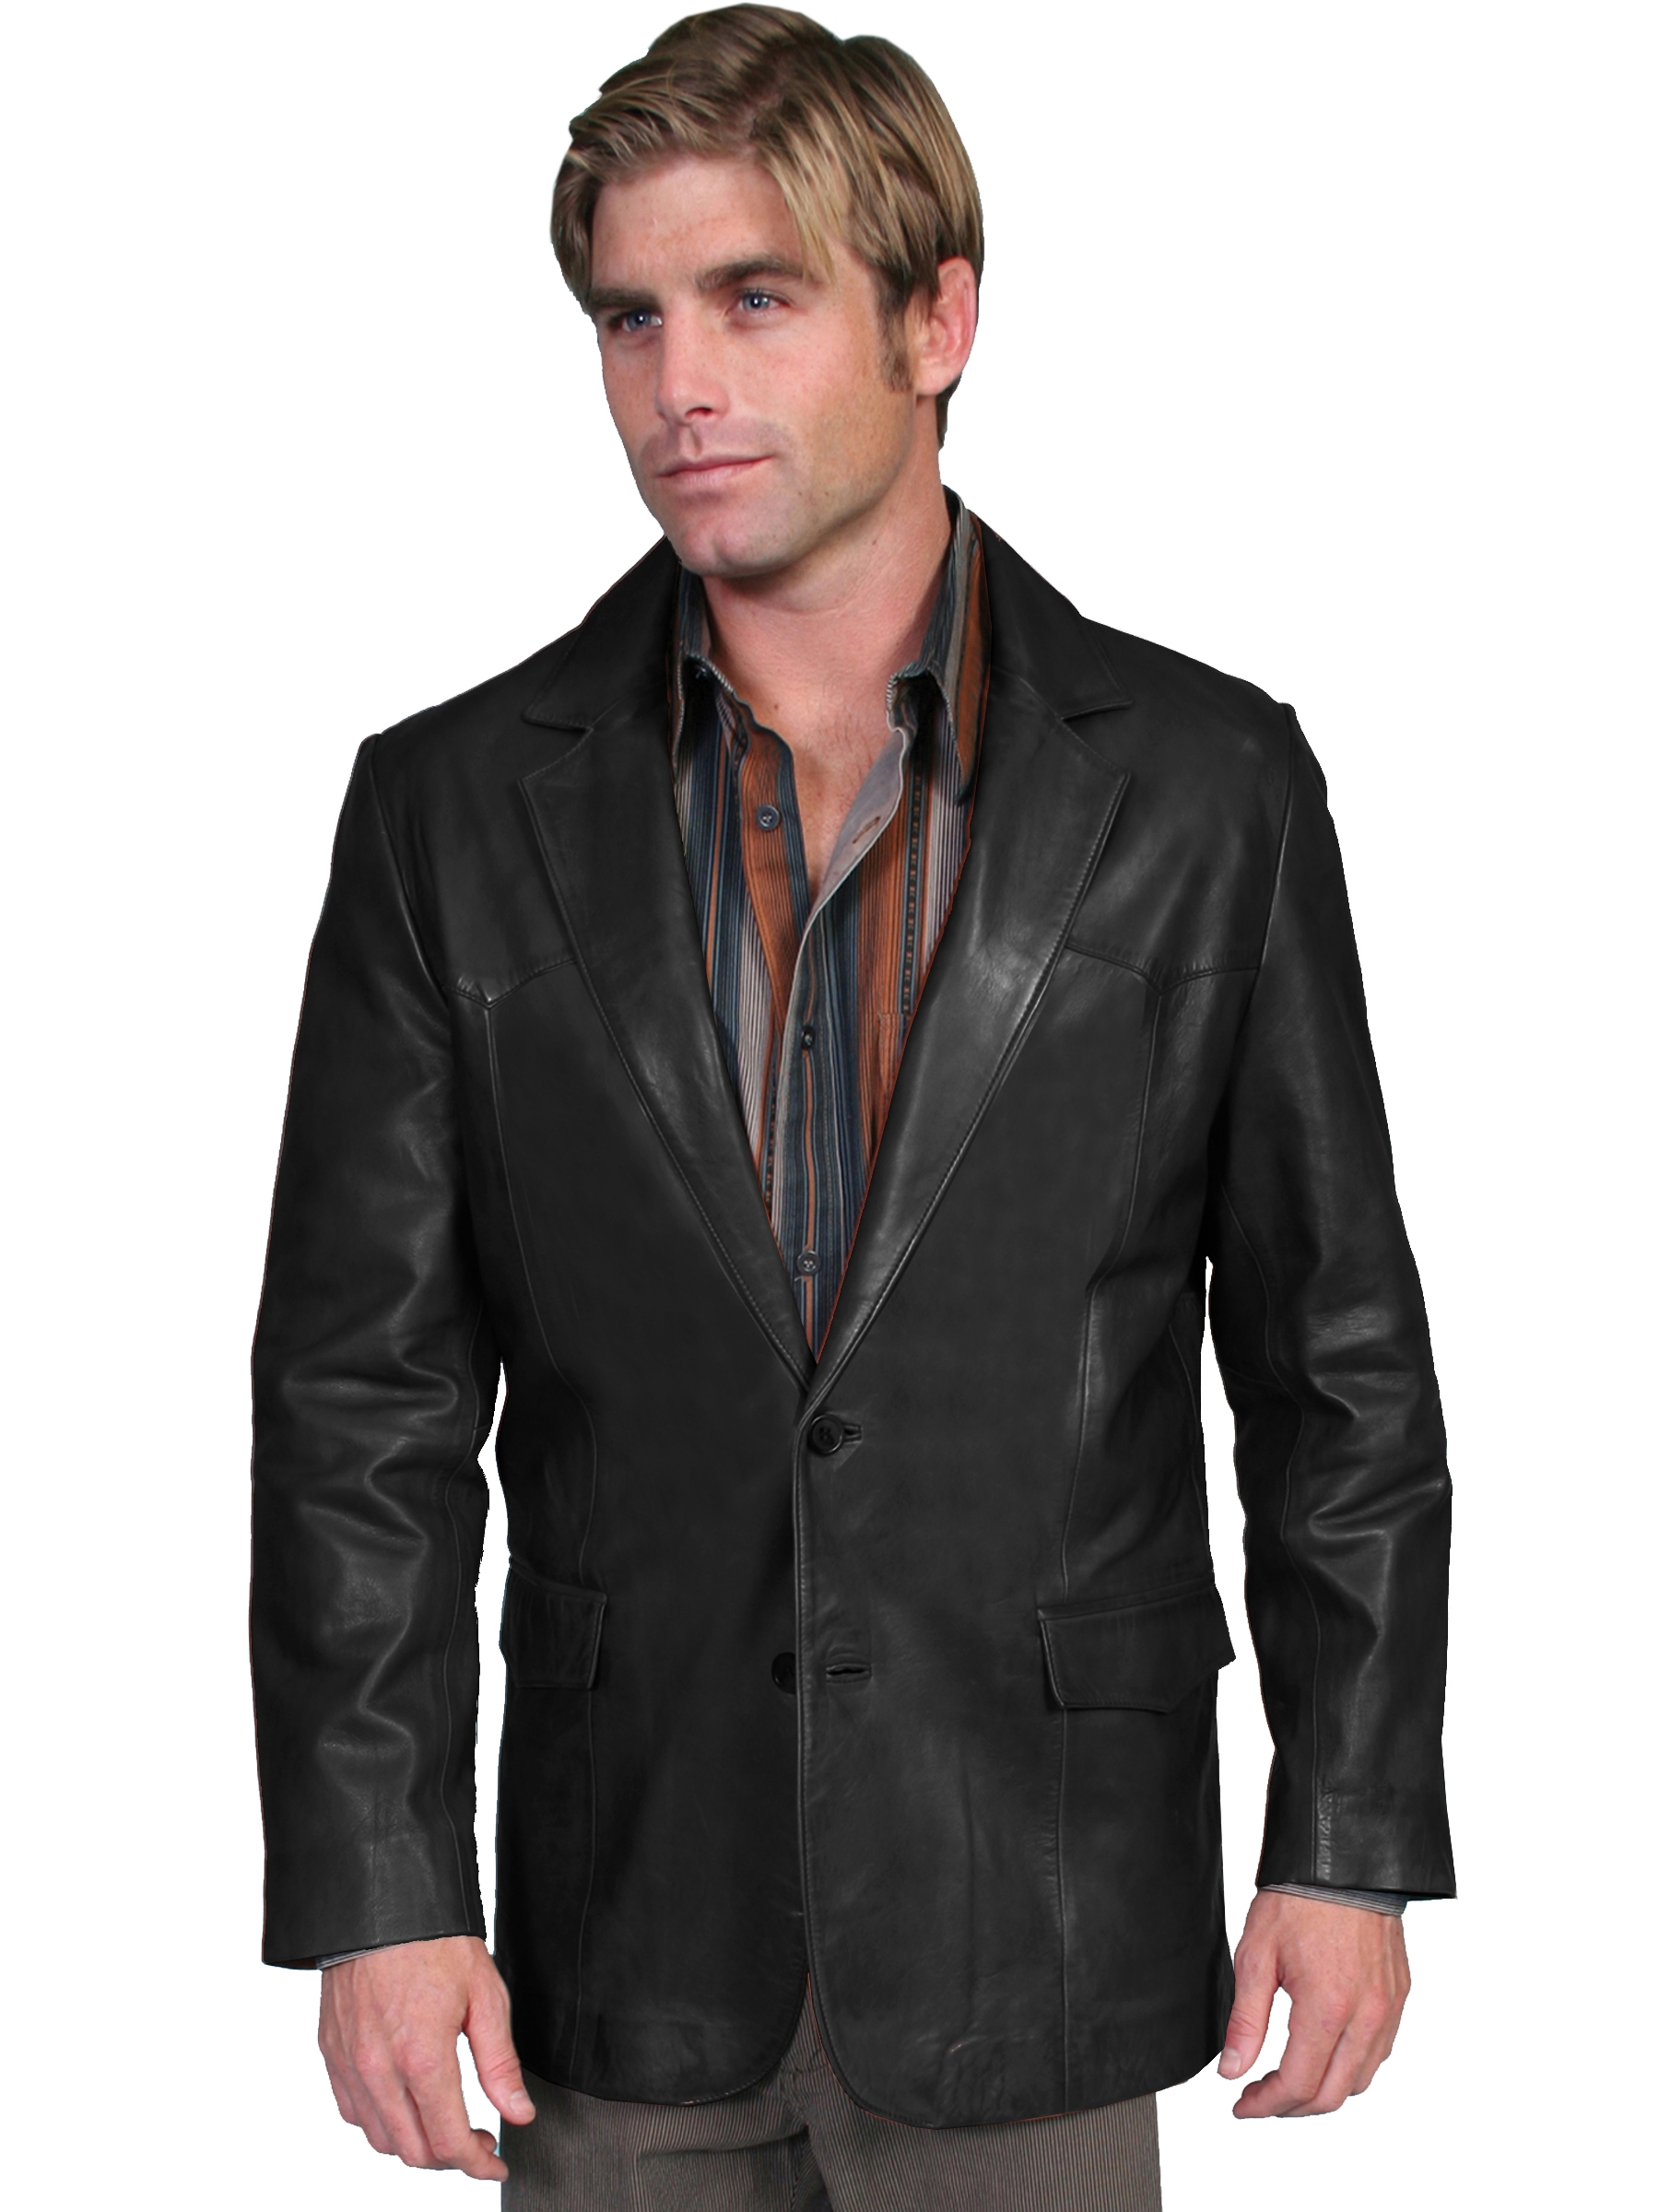 This Mens Scully Black lambskin Western blazer comes in long and extra long sizes for mens big n tall cowboys